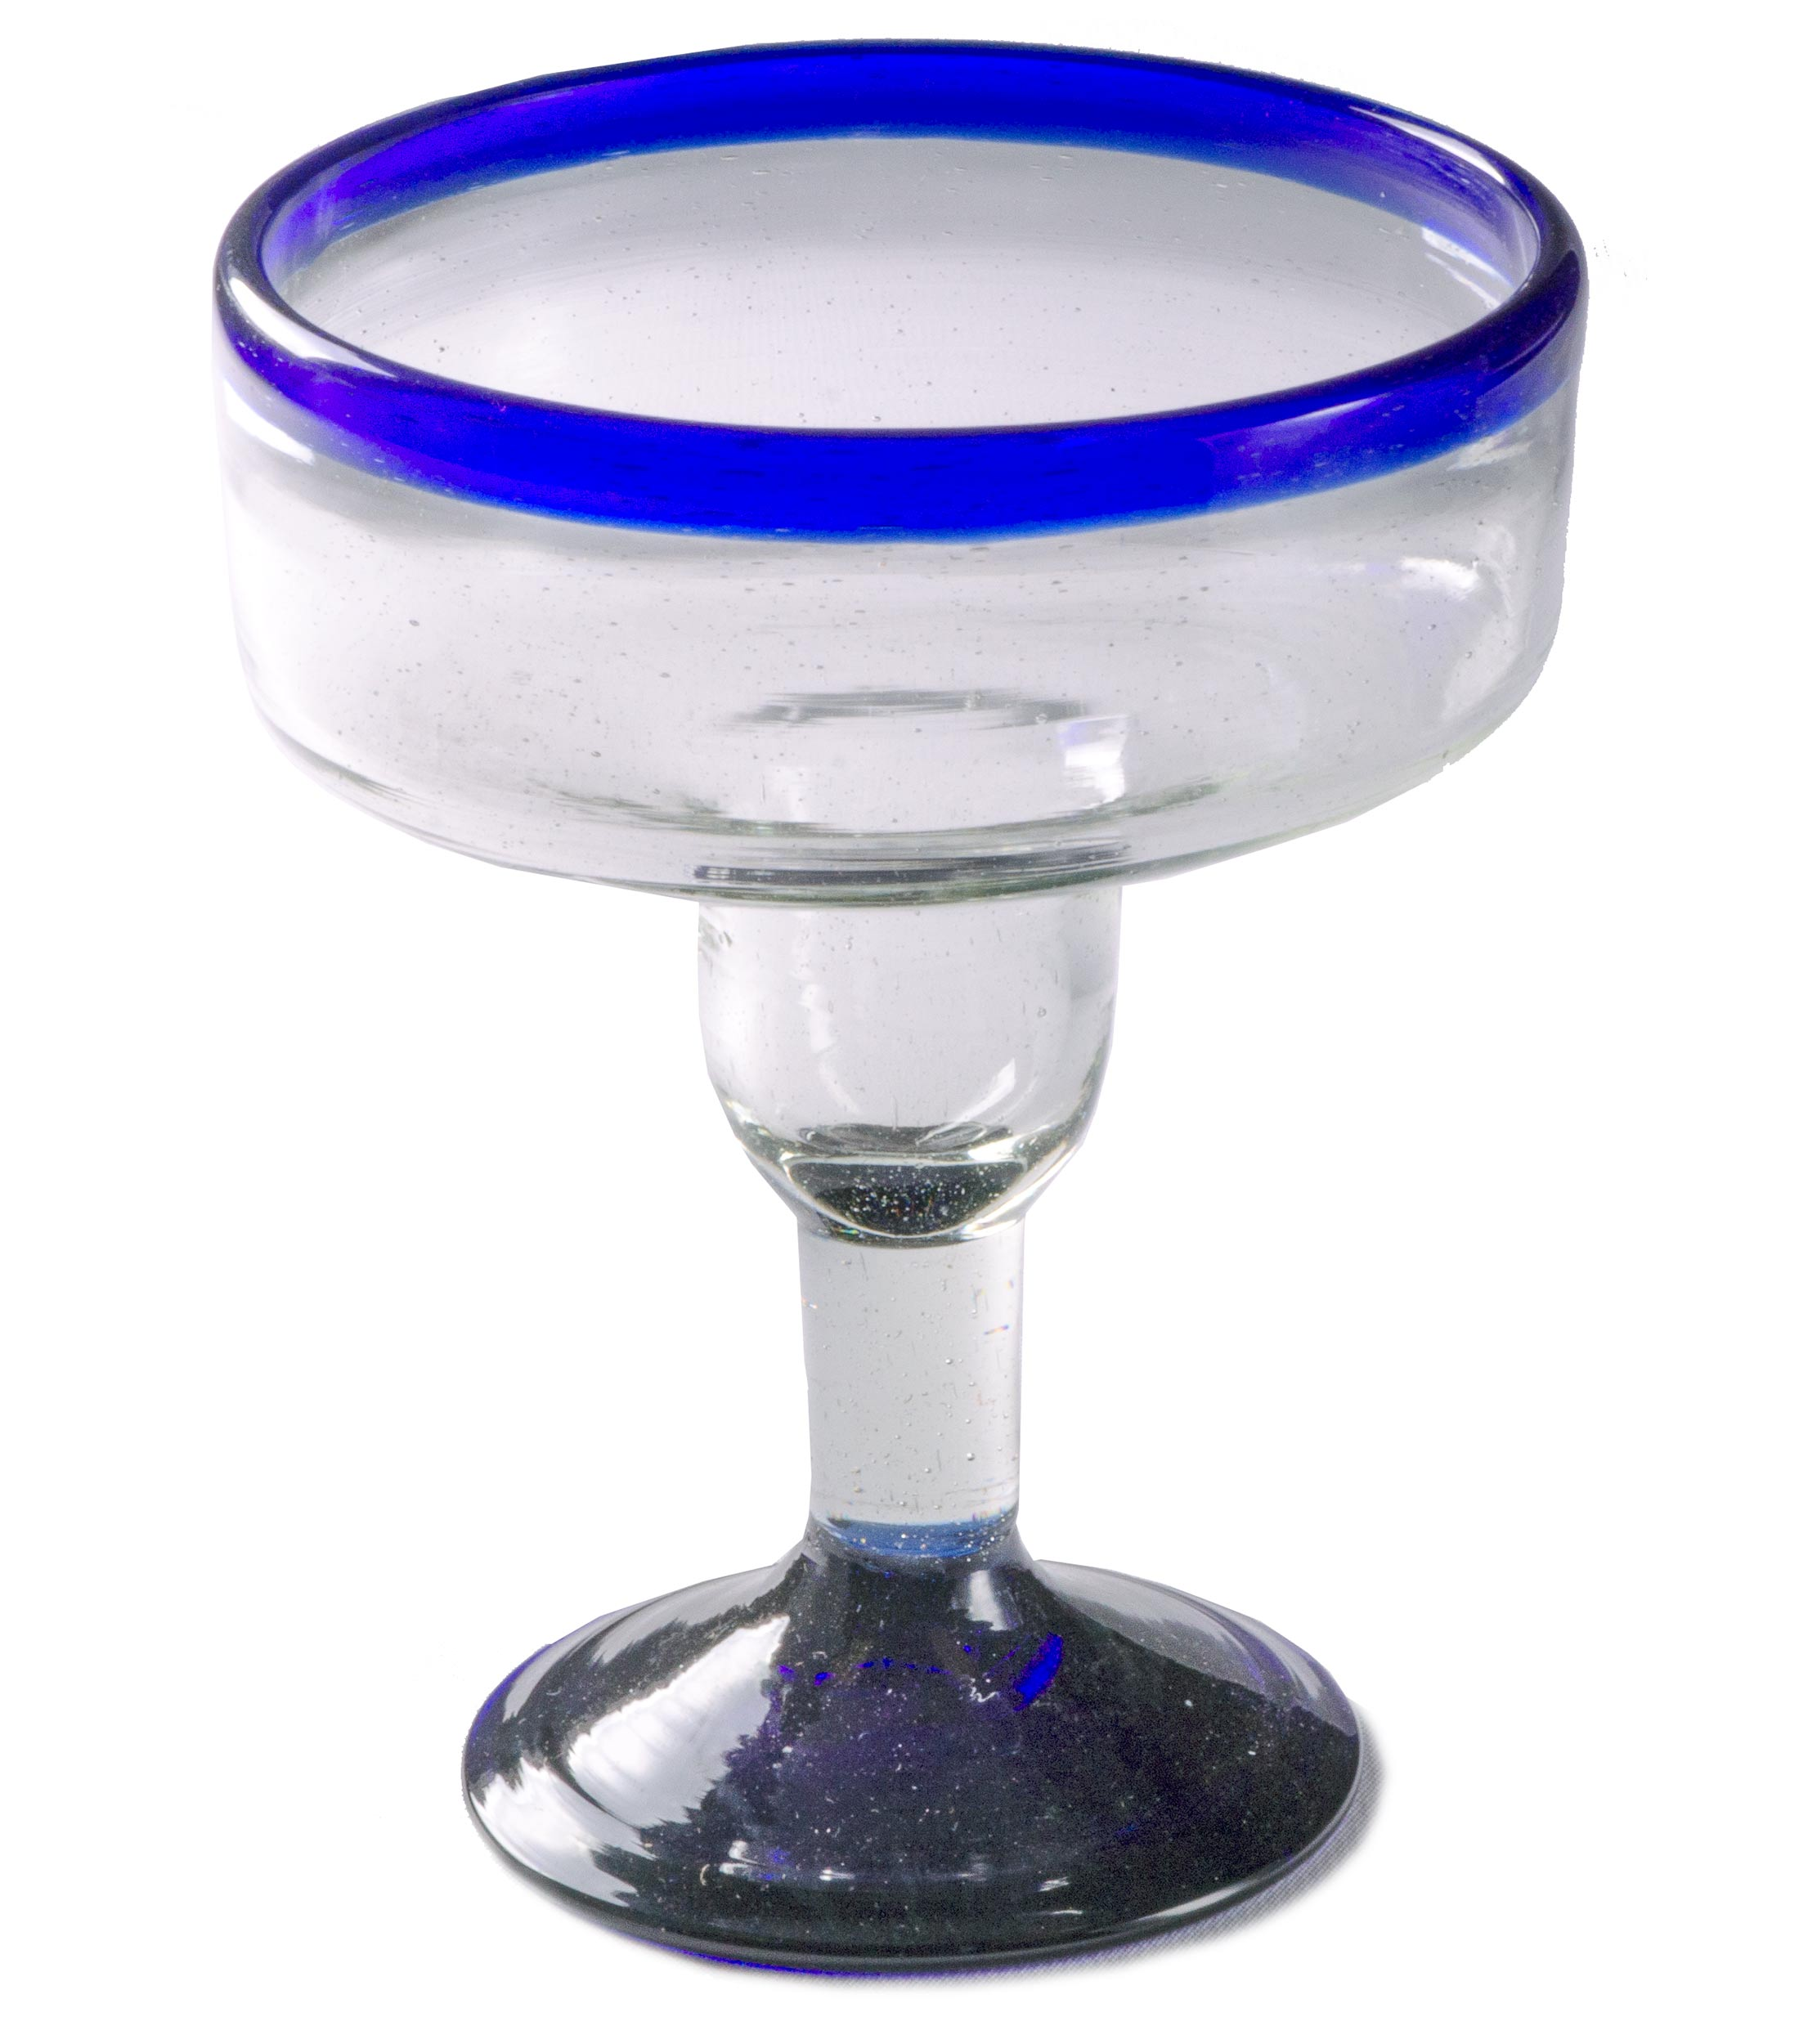 Orion Blue Rim 12 oz Margarita/Coupette - Set of 4 - Orion's Table Mexican Glassware